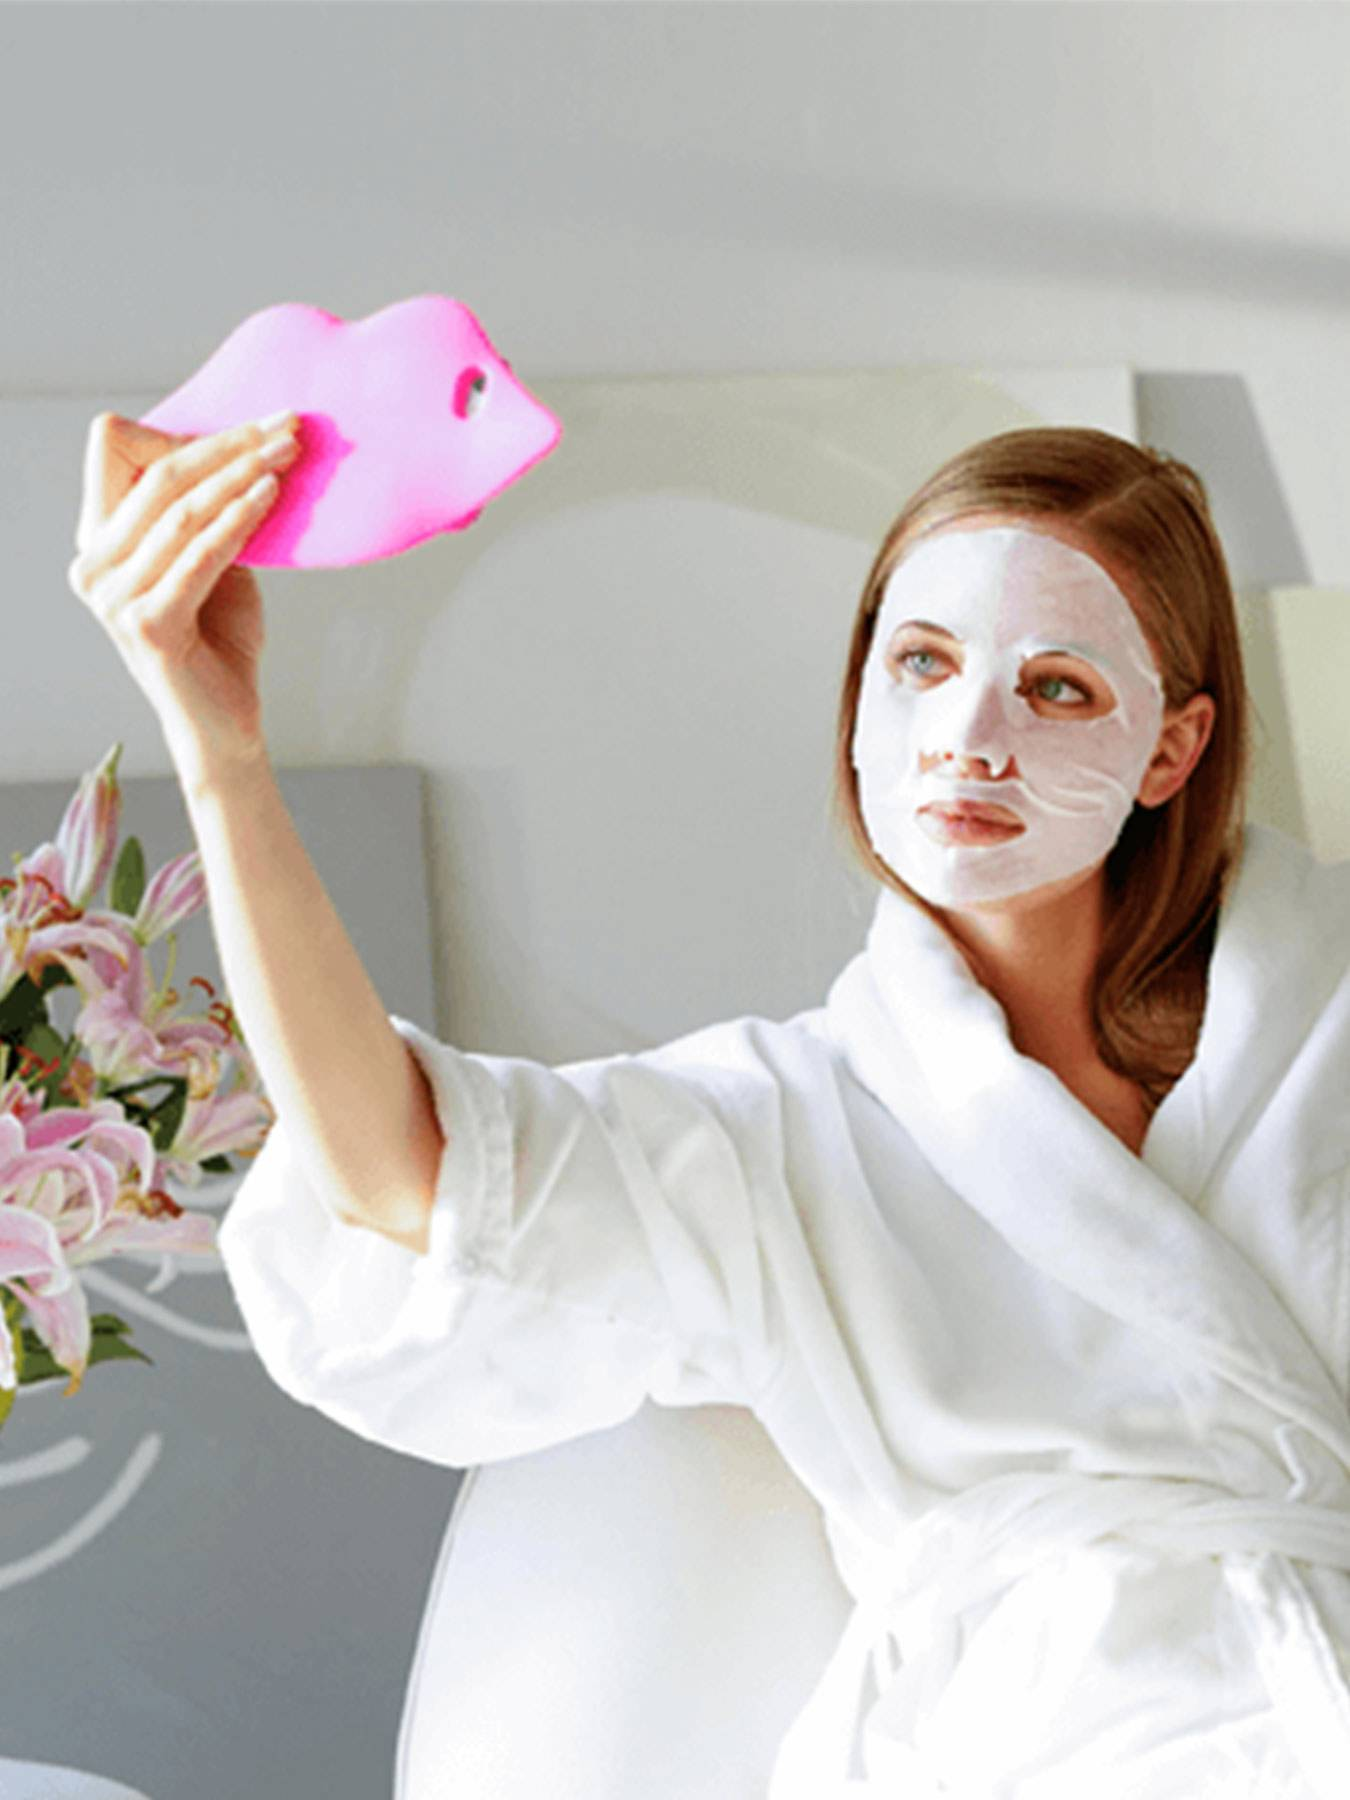 A woman wearing a white bathrobe and The Super Hydrating Sheet Mask - Anti-Fatigue sitting on a white chair holding up a pink lip-shaped mirror in a white and gray room with pink and white flowers on a reflective table.